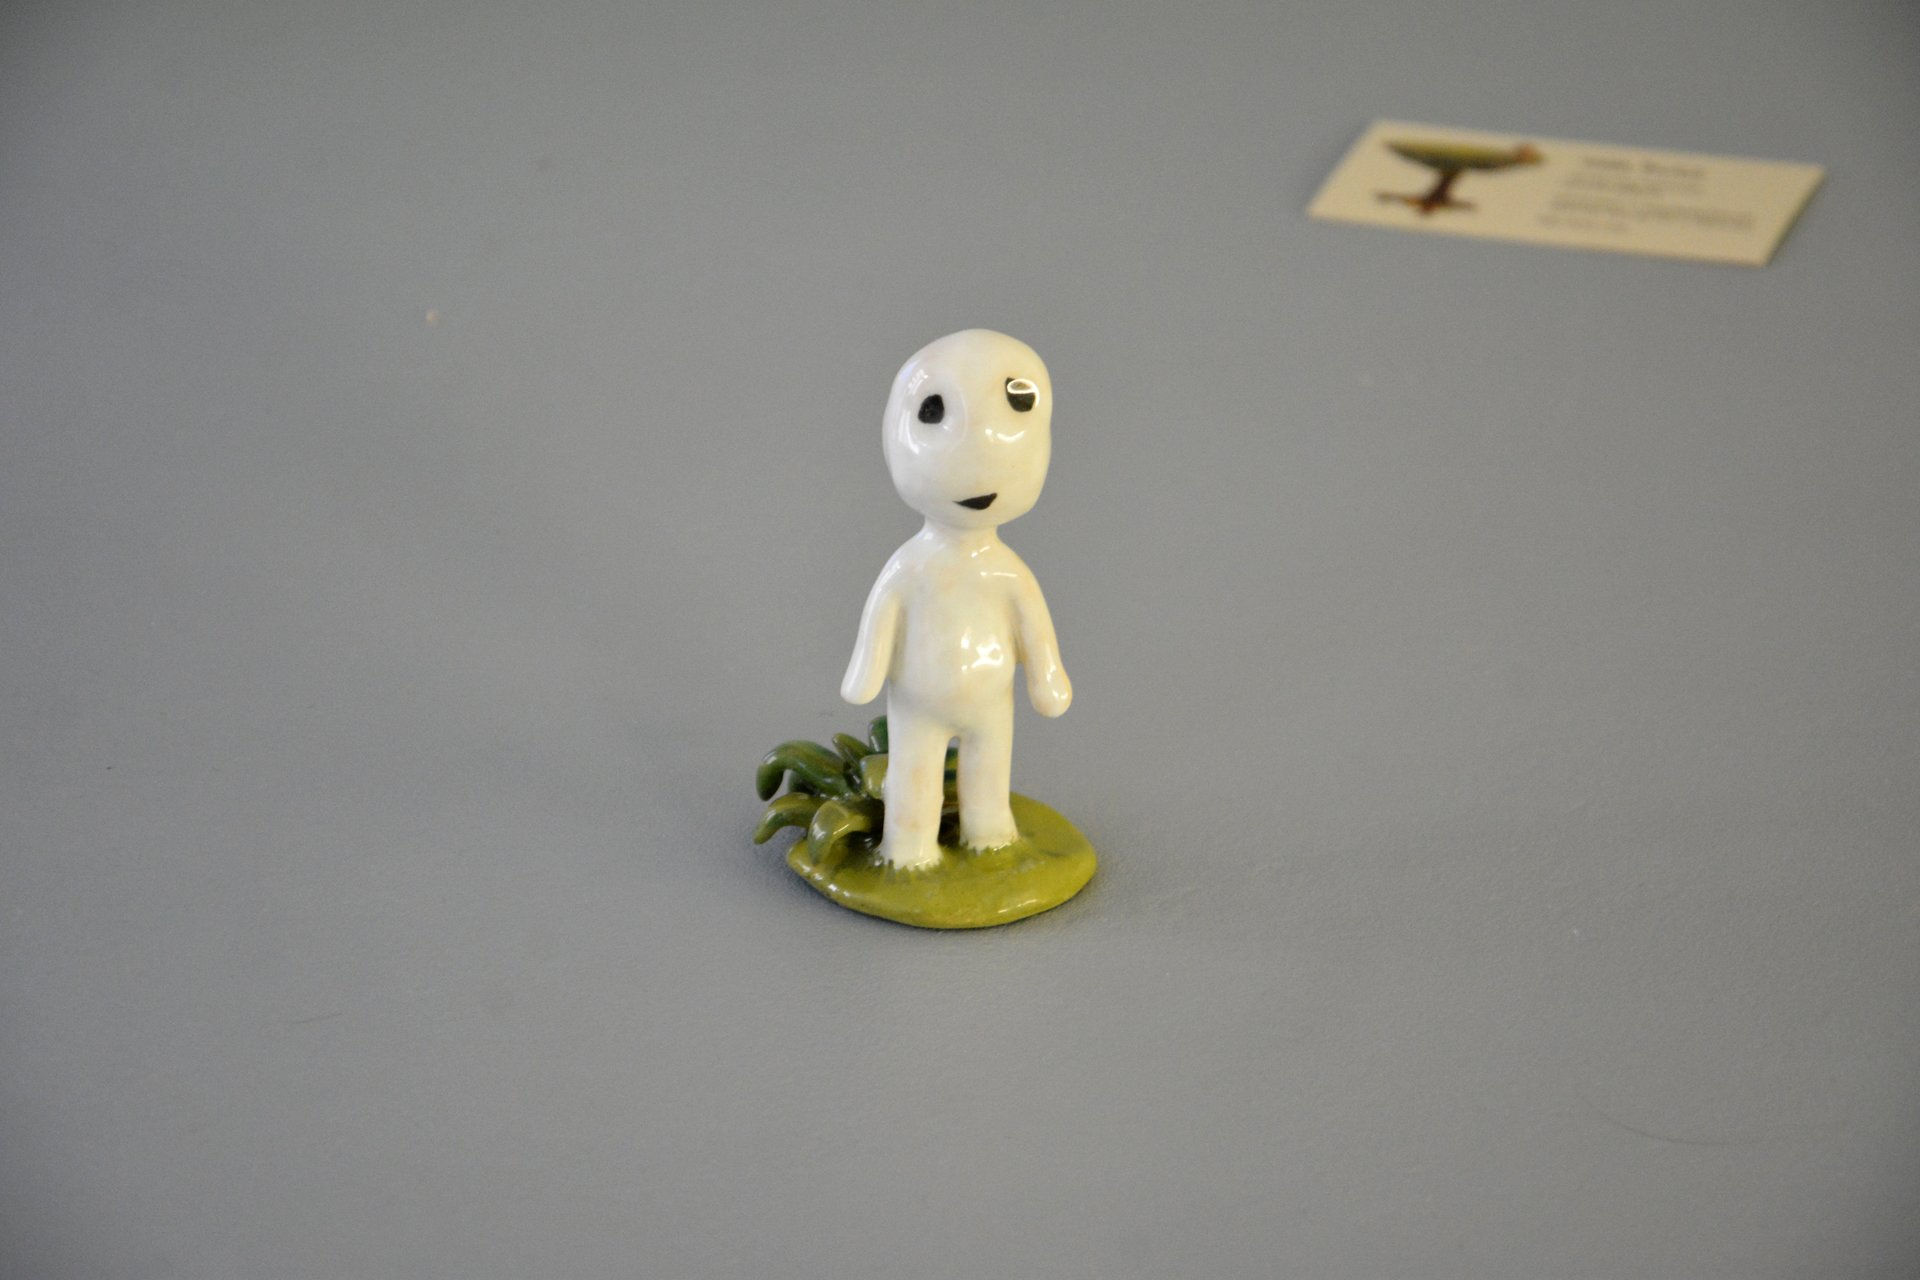 A figurine of a smiling Kodama tree spirit, height - 9.5 cm, photo 1 of 7.